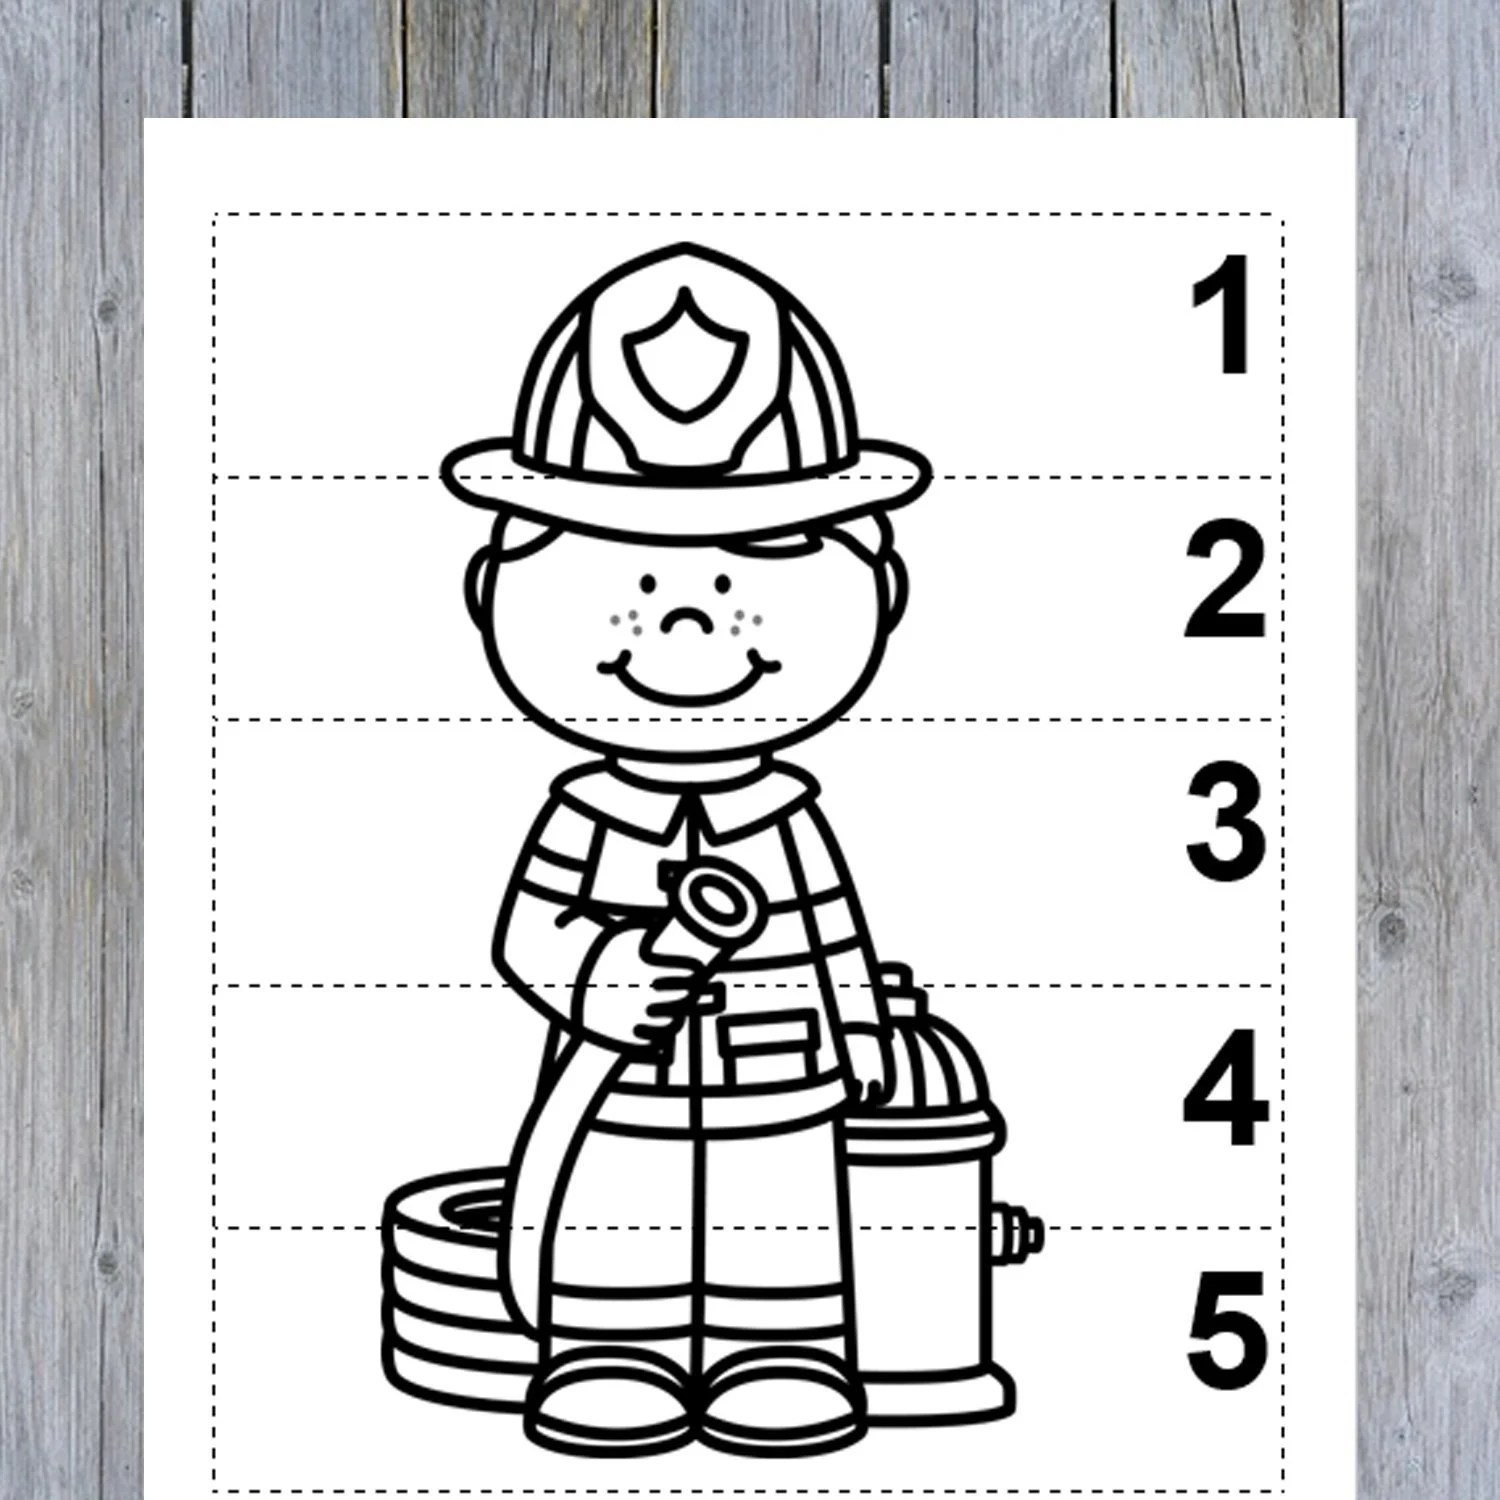 10 Community Helpers Number Sequence 1 5 Preschool Math B